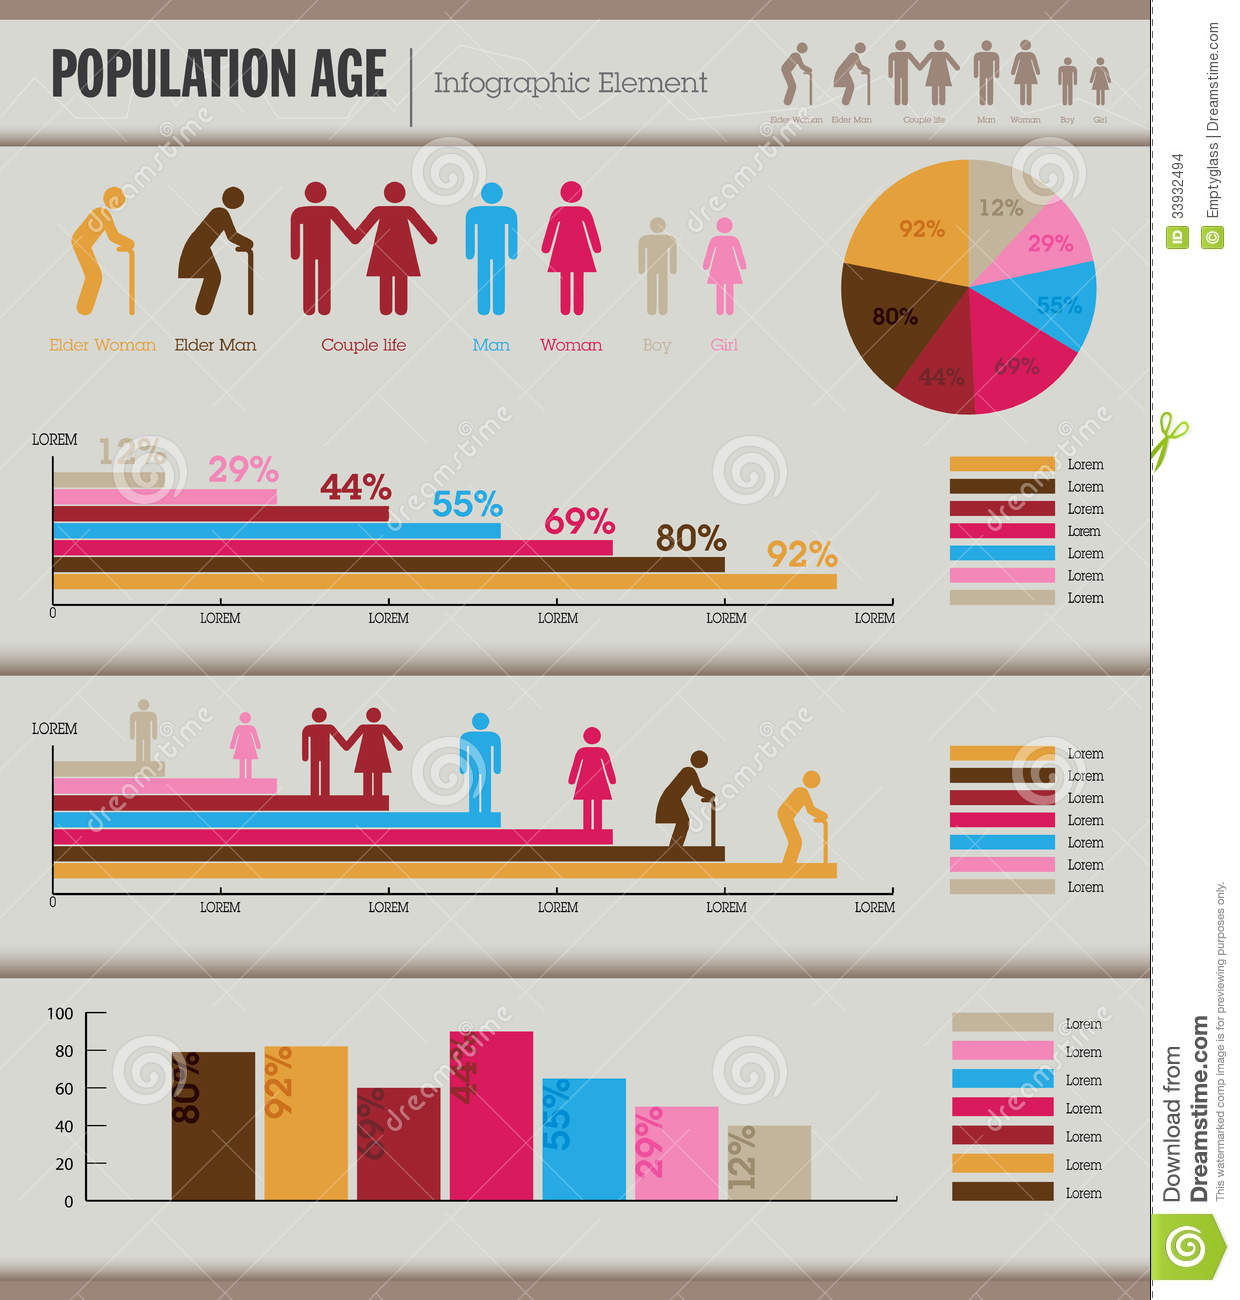 Population Age Infographic Stock Images - Image: 33932494